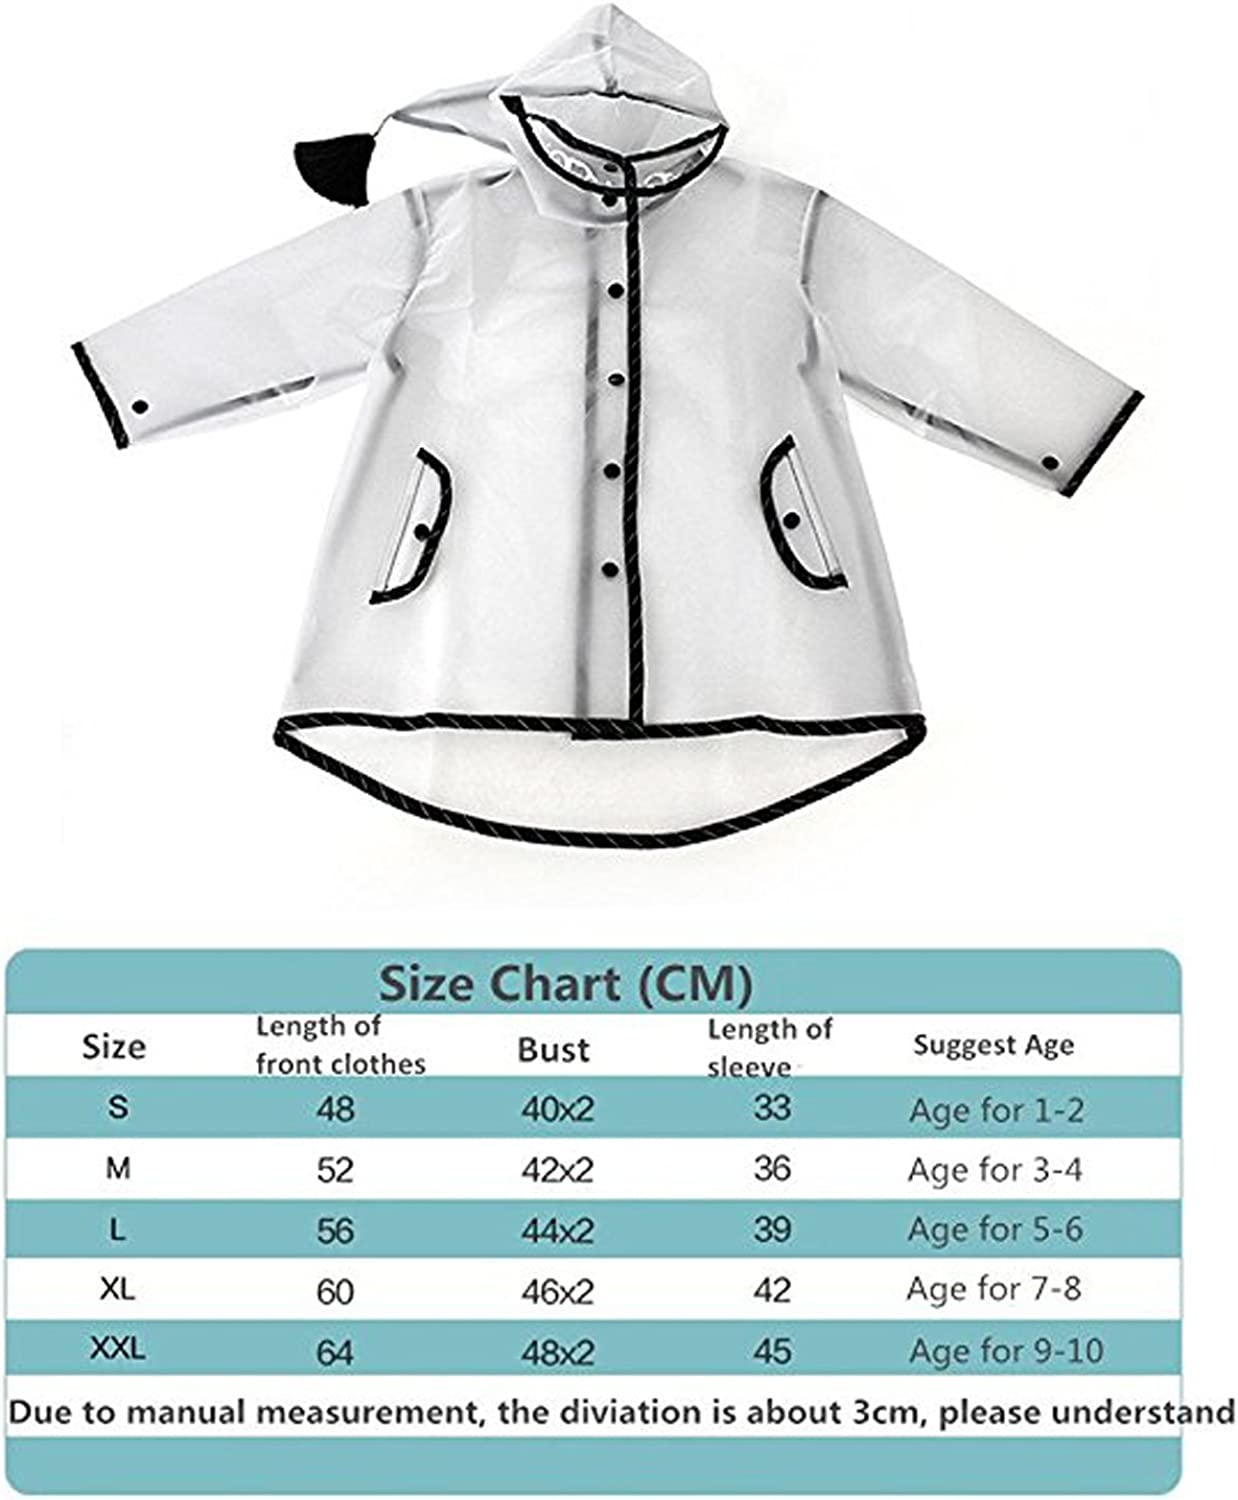 Kids Durable Rain Cape//Raincoat Portable Hooded Poncho for Boys Girls